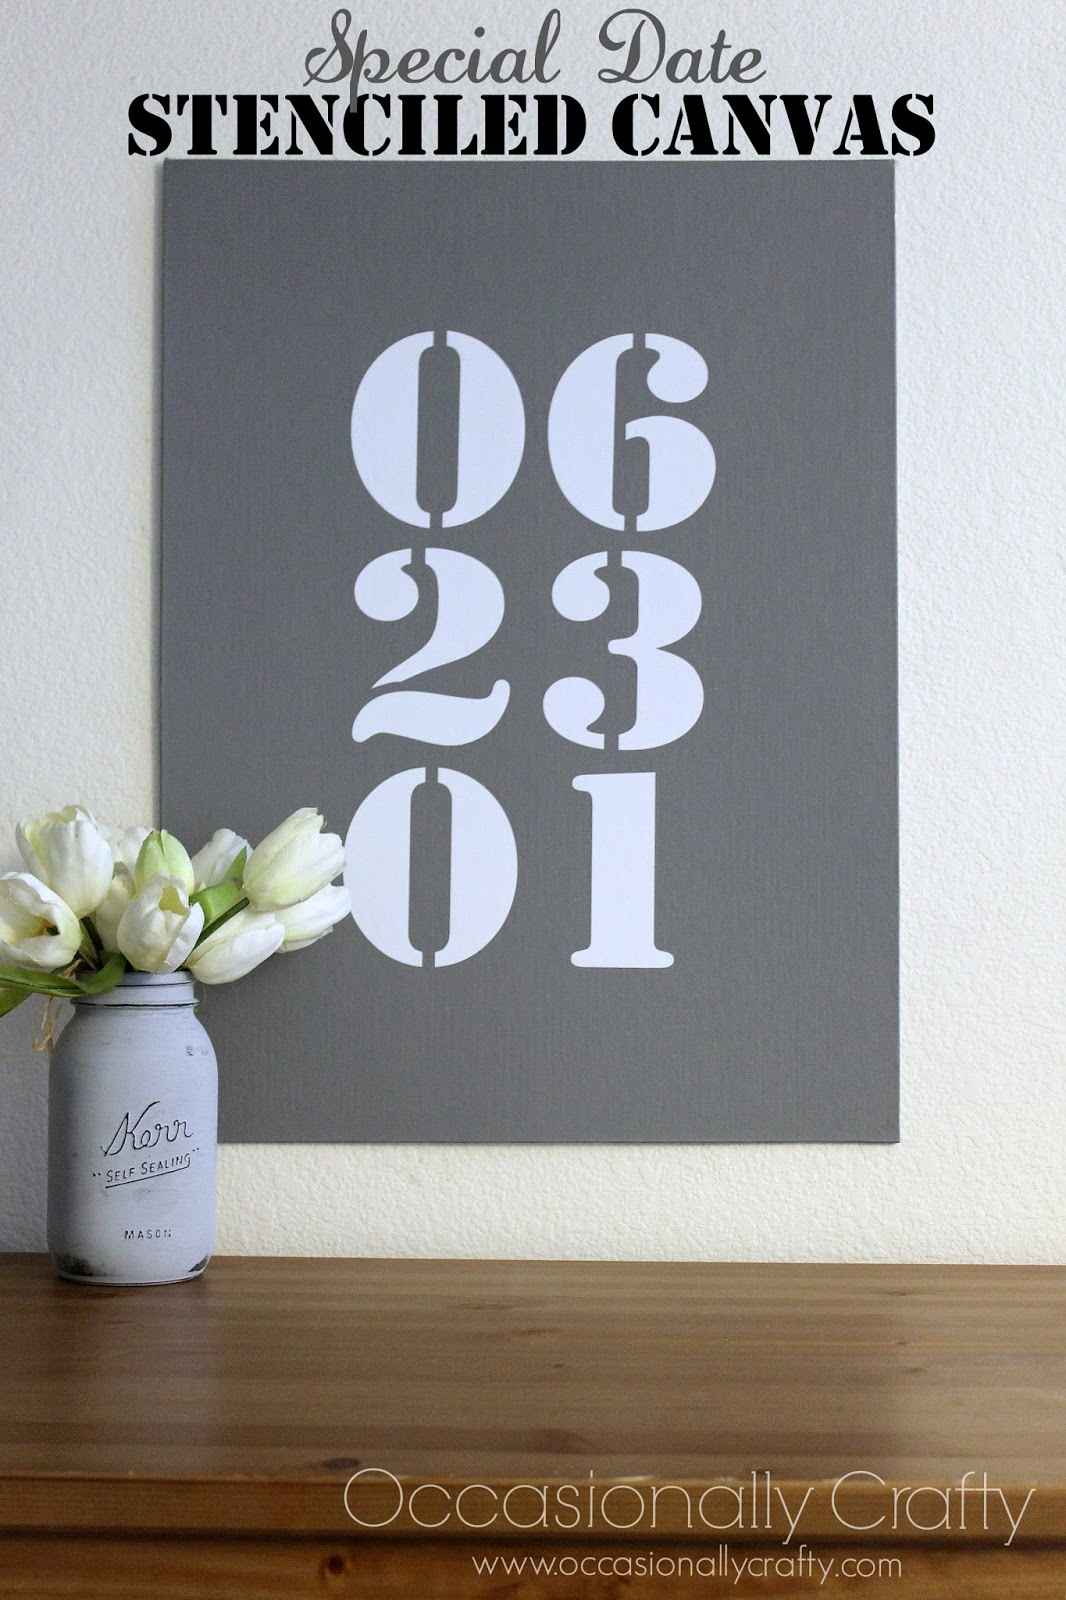 Special Date Stenciled Wall Canvas Occasionally Crafty Special